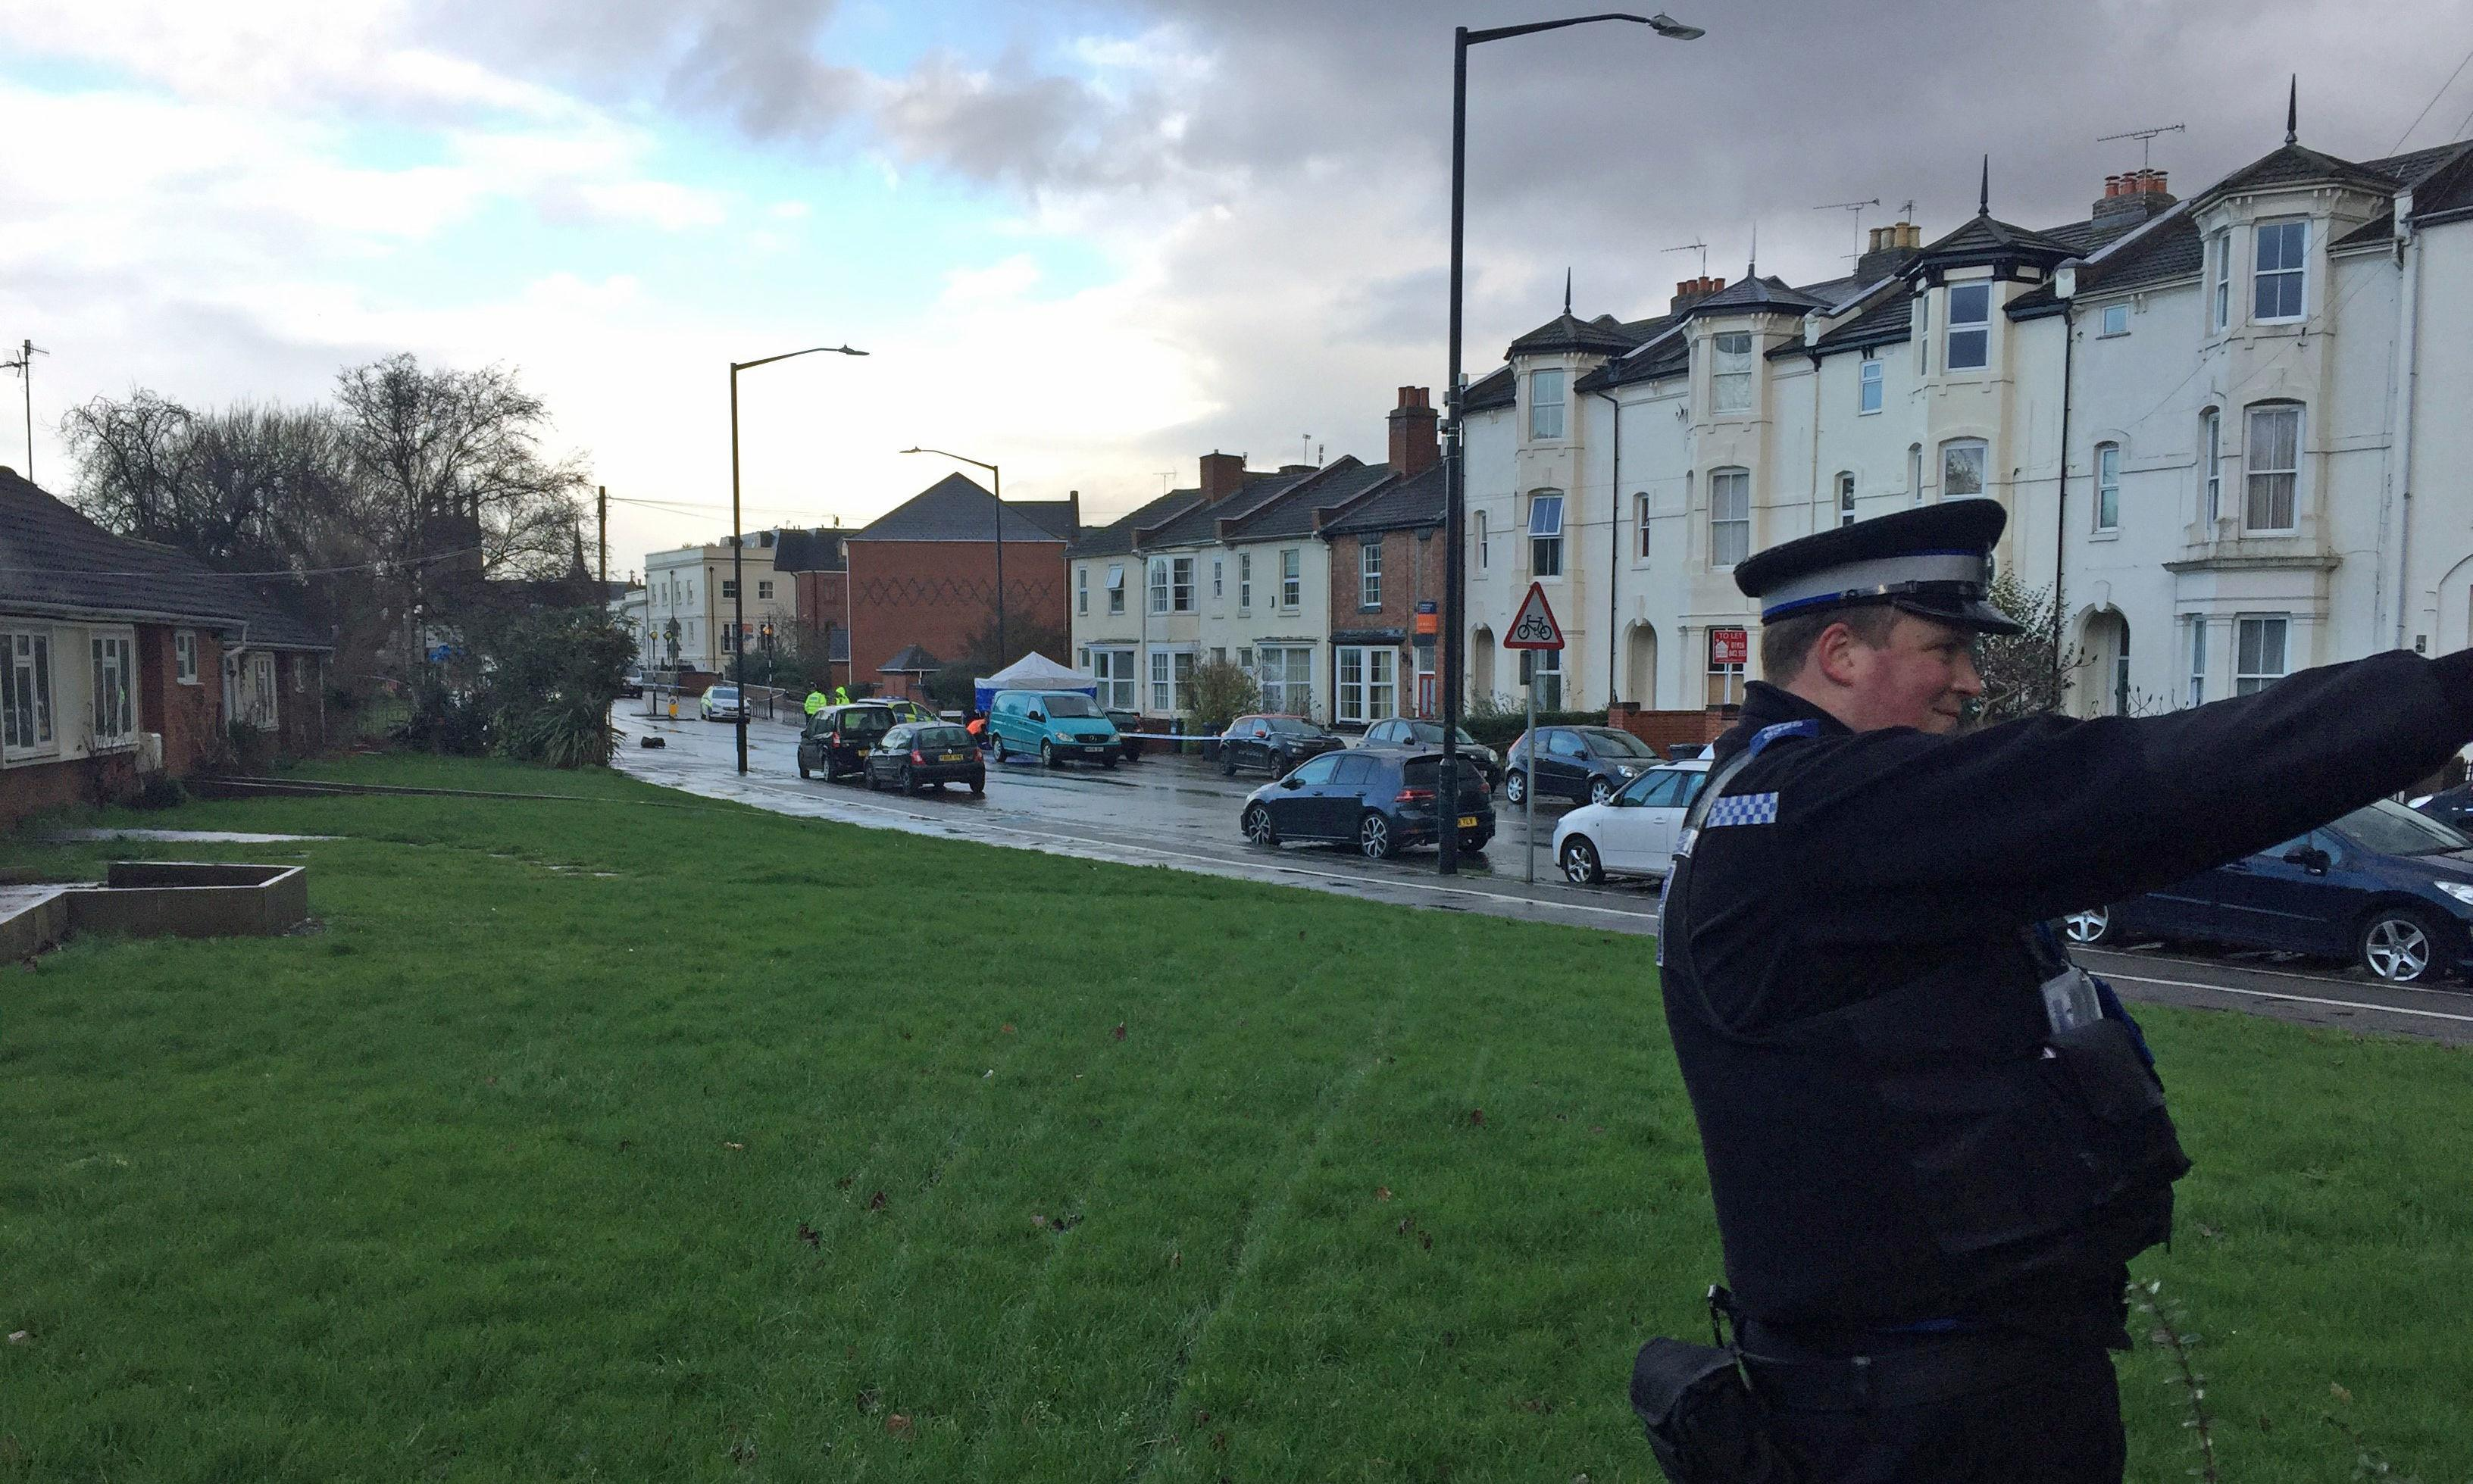 Man held after fatal stabbing in Leamington Spa